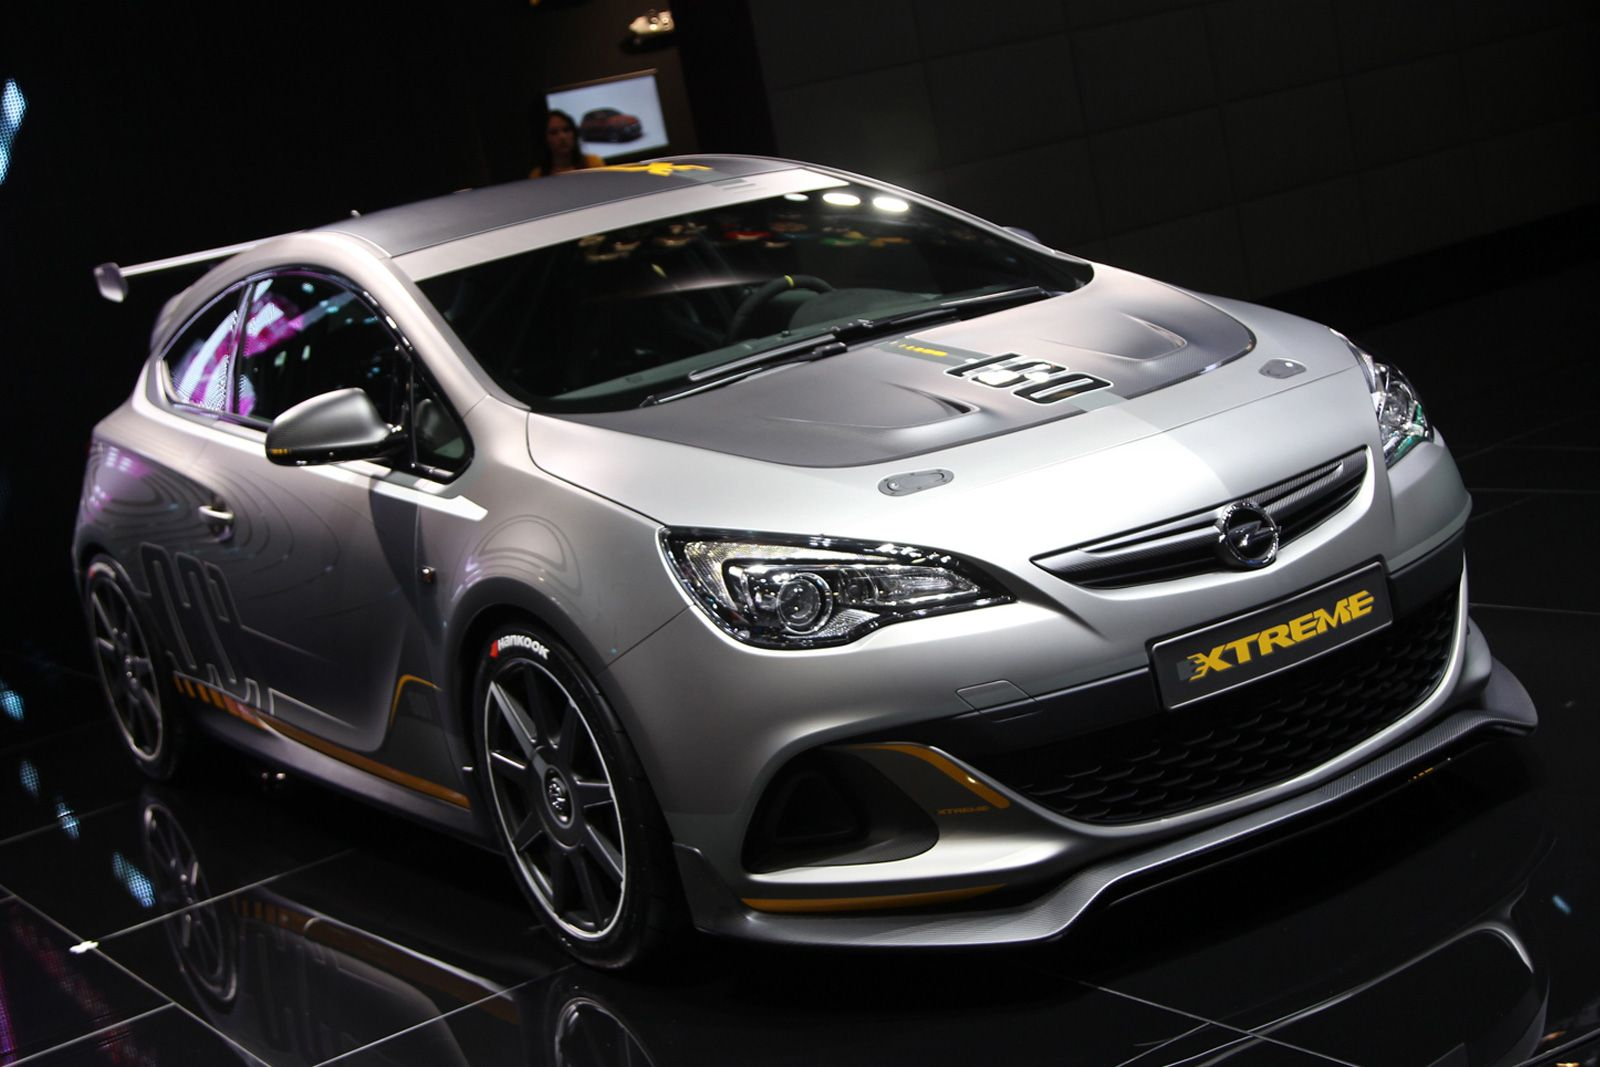 Vauxhall Astra VXR Extreme | Modified cars, Luxury cars ...